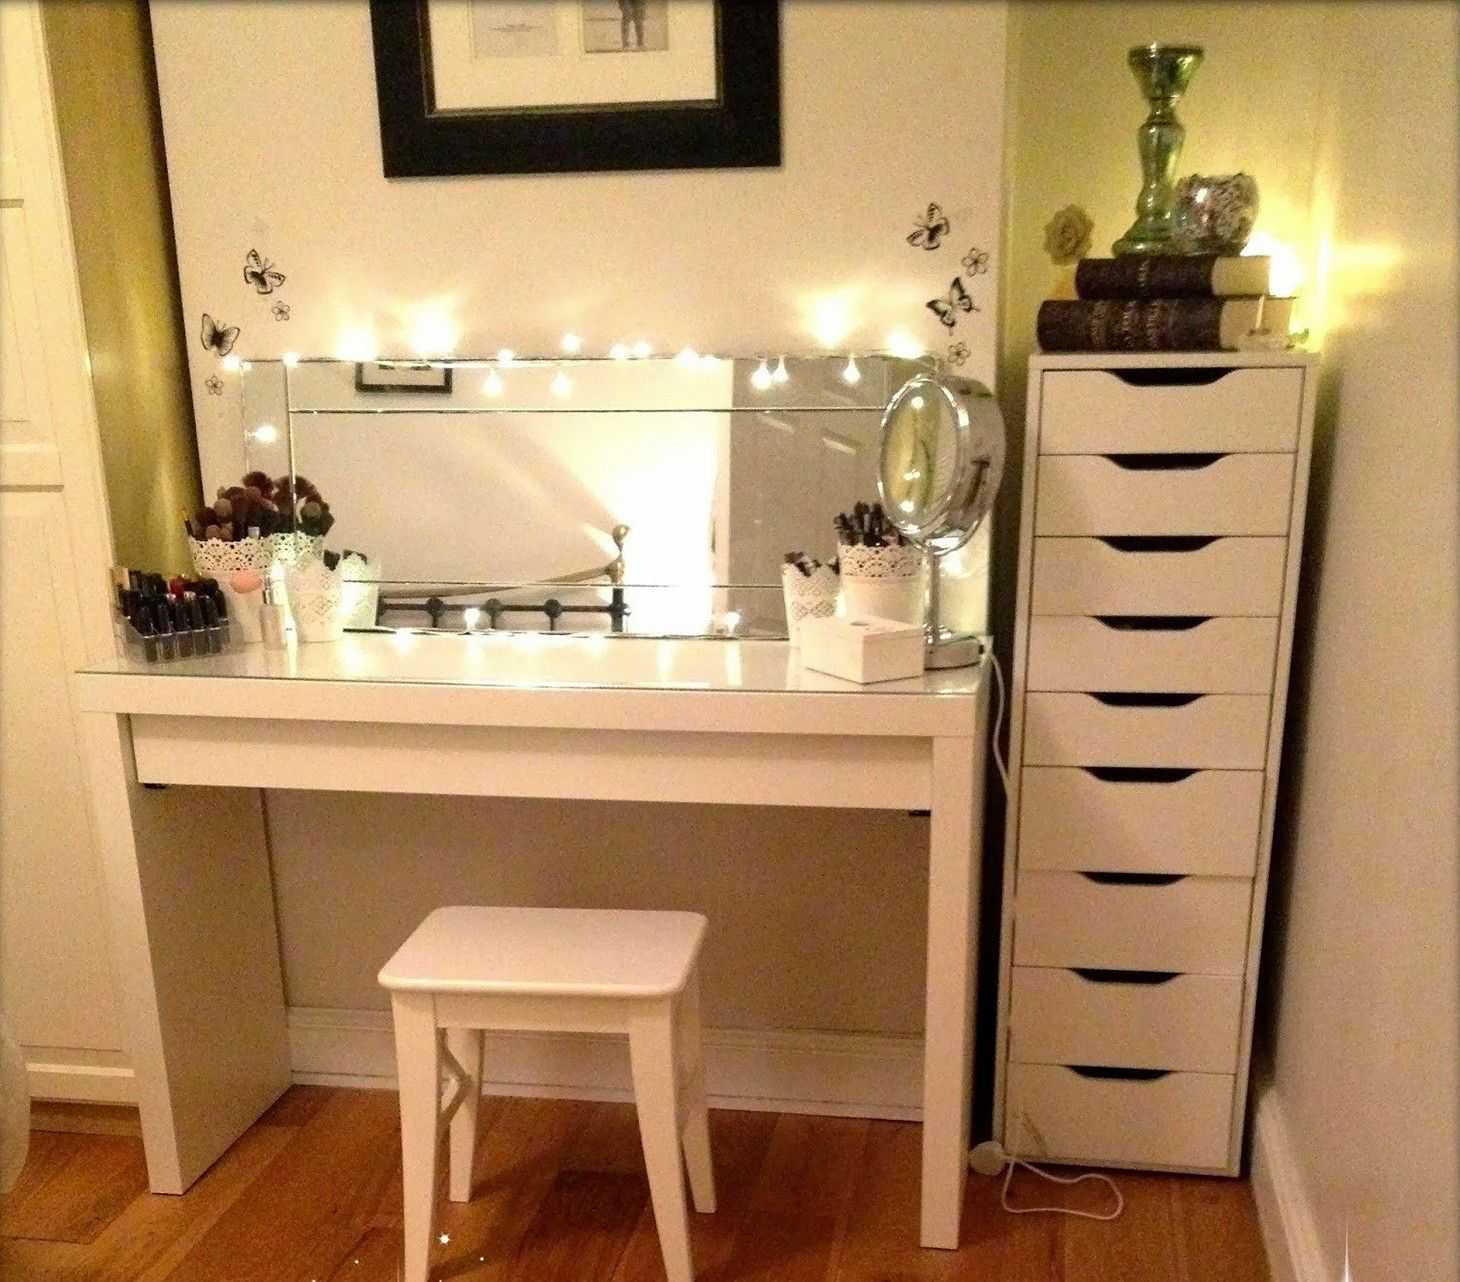 Makeup Vanity Ideas For Small Spaces Best Paint For Interior Check More At Http Www Tampafetishparty Co Small Bedroom Vanity Ikea Vanity Ikea Makeup Vanity